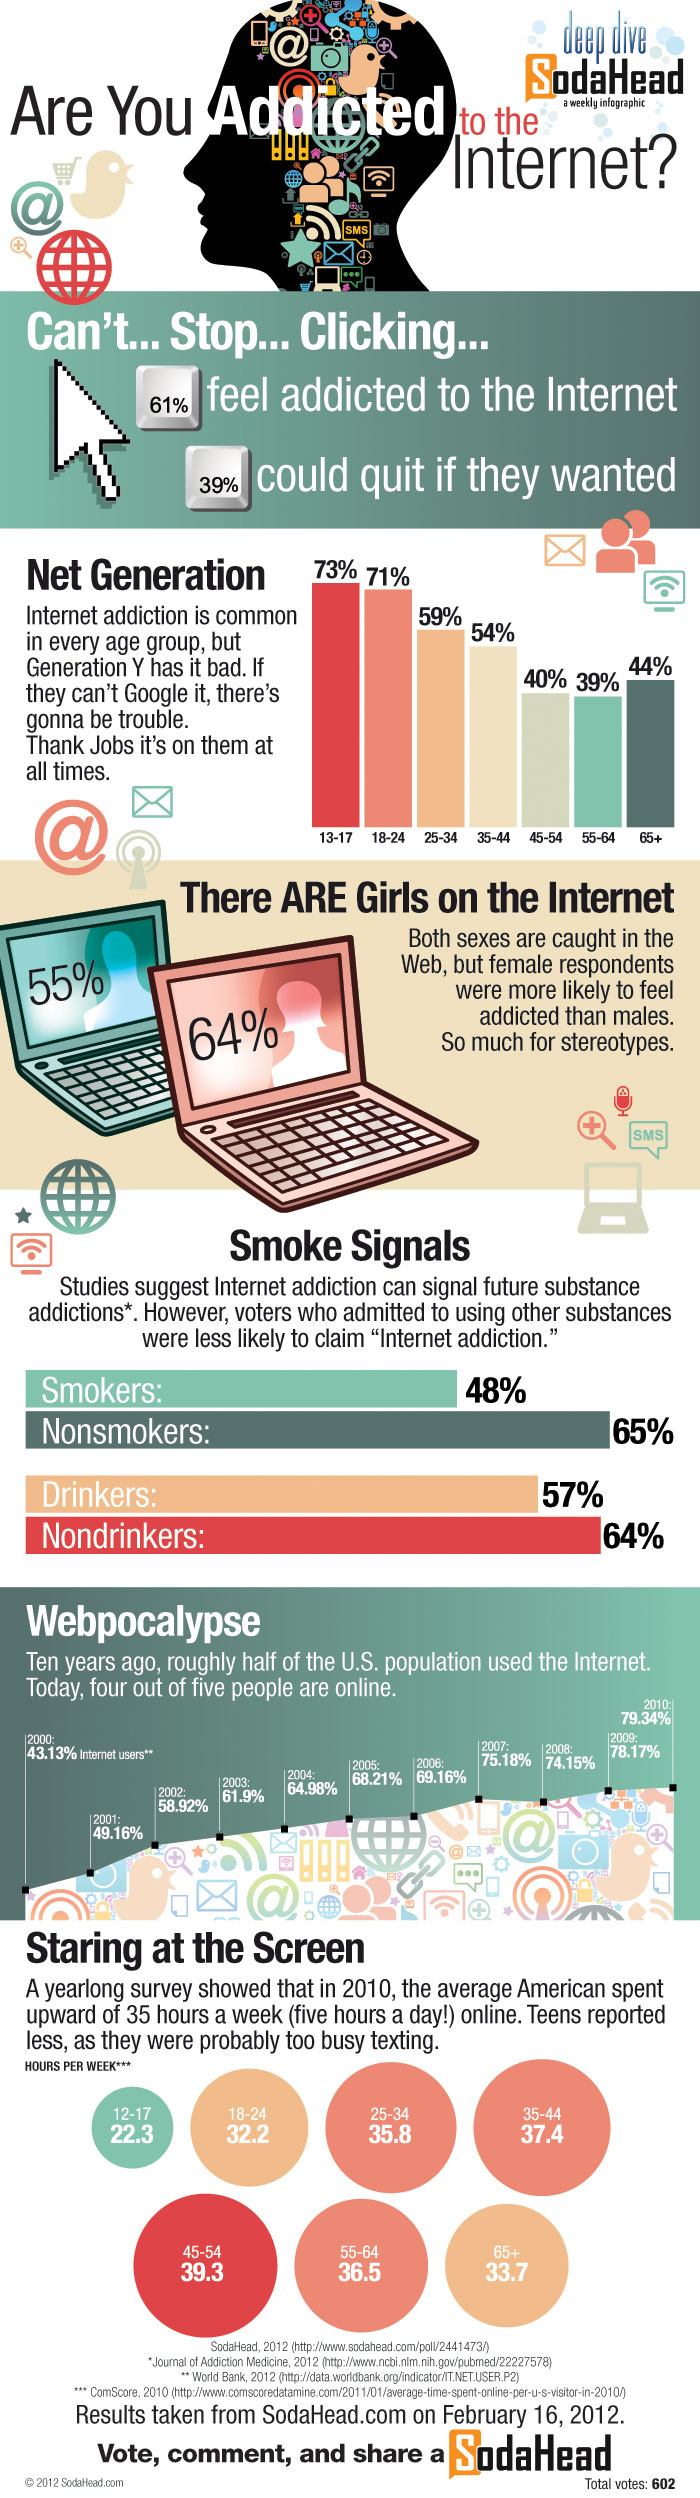 Are You Addicted To The Internet Infographic